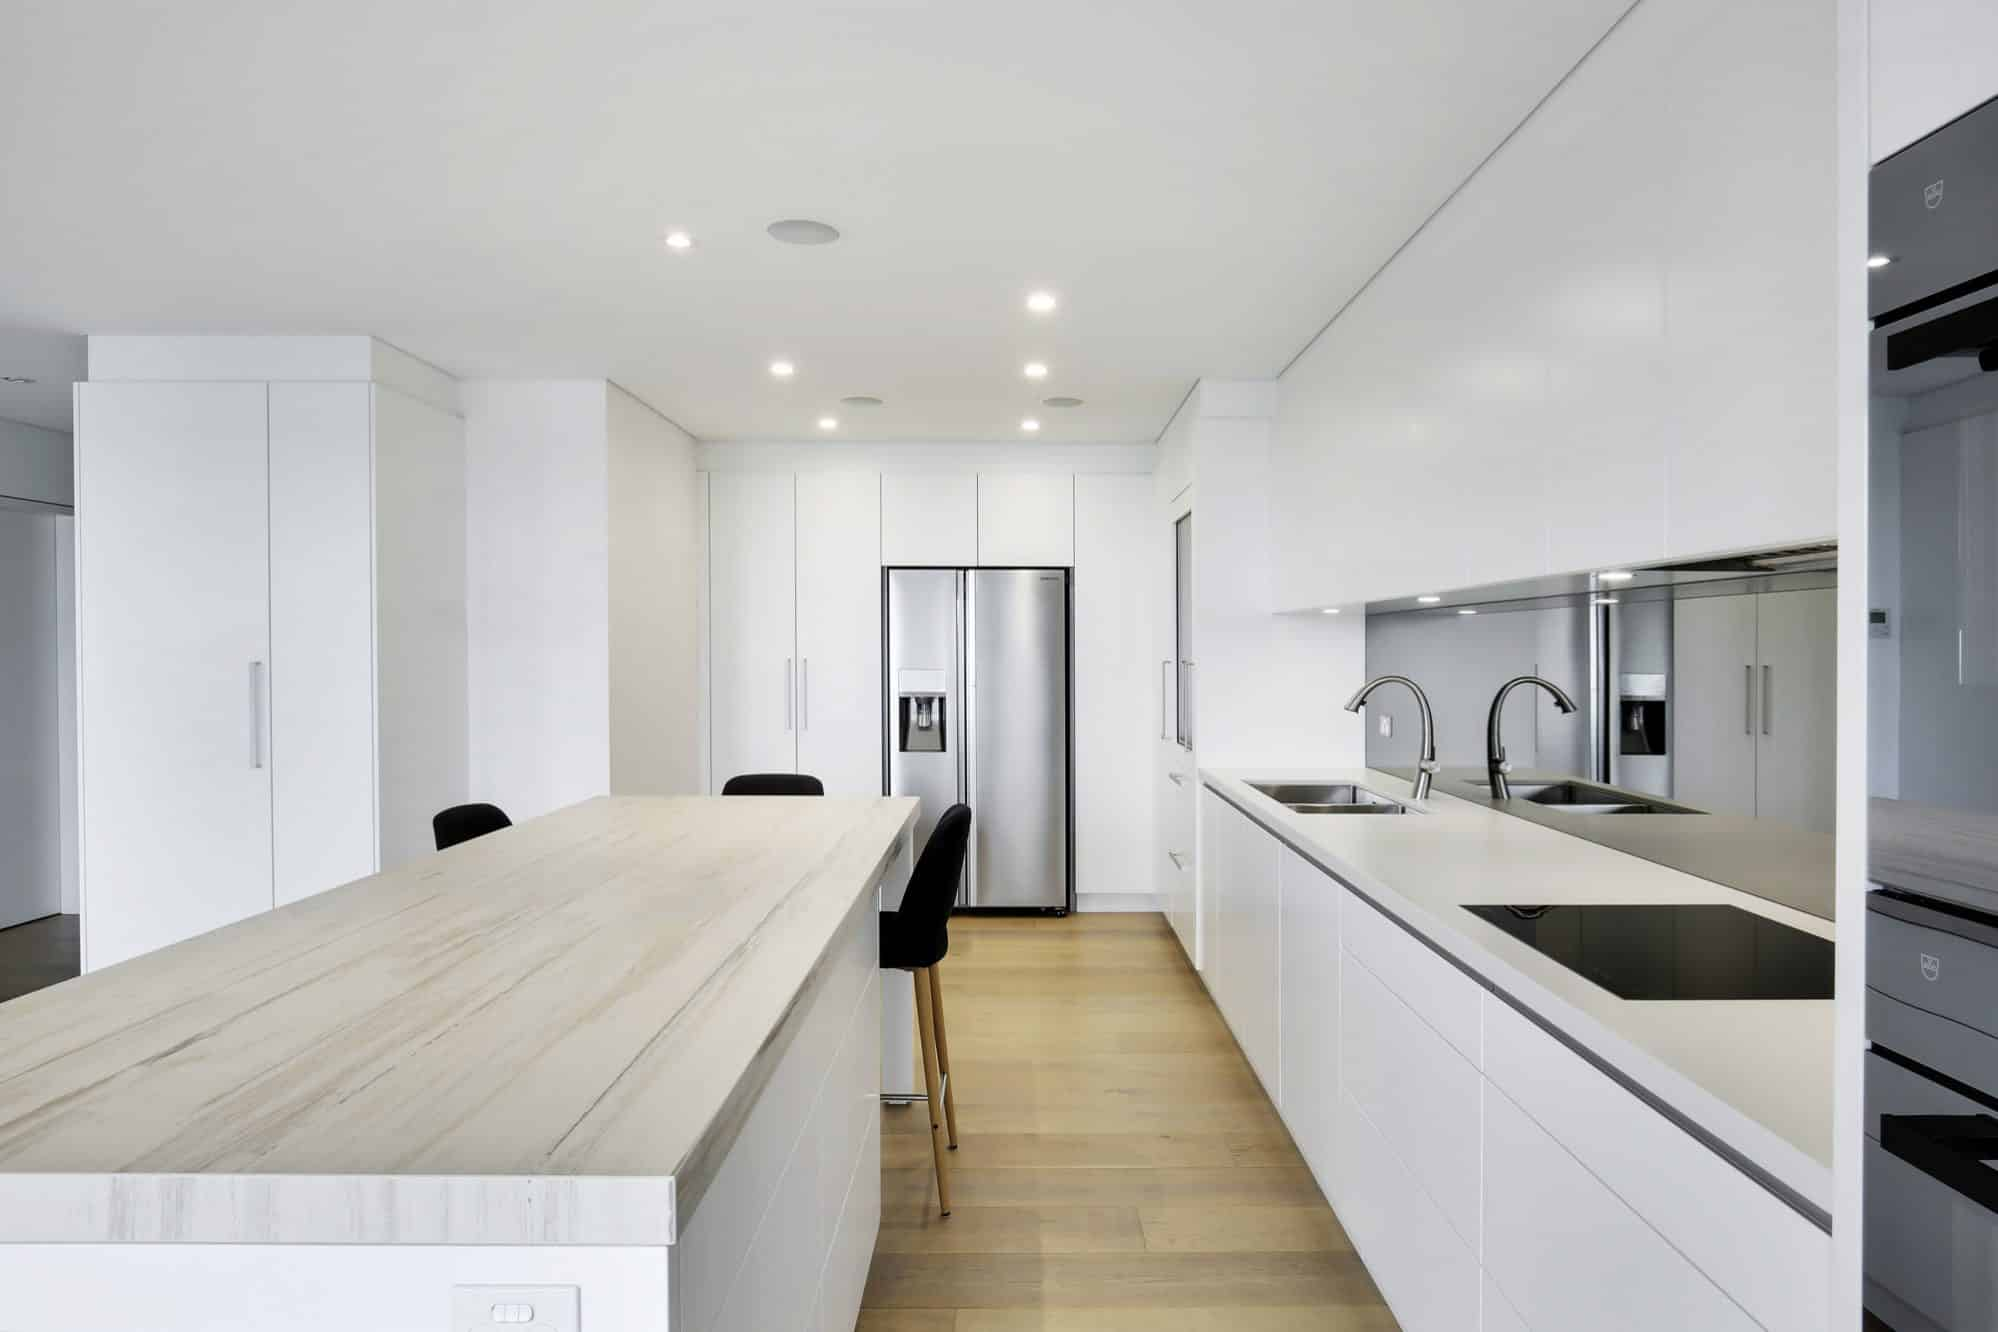 A sharp looking kitchen